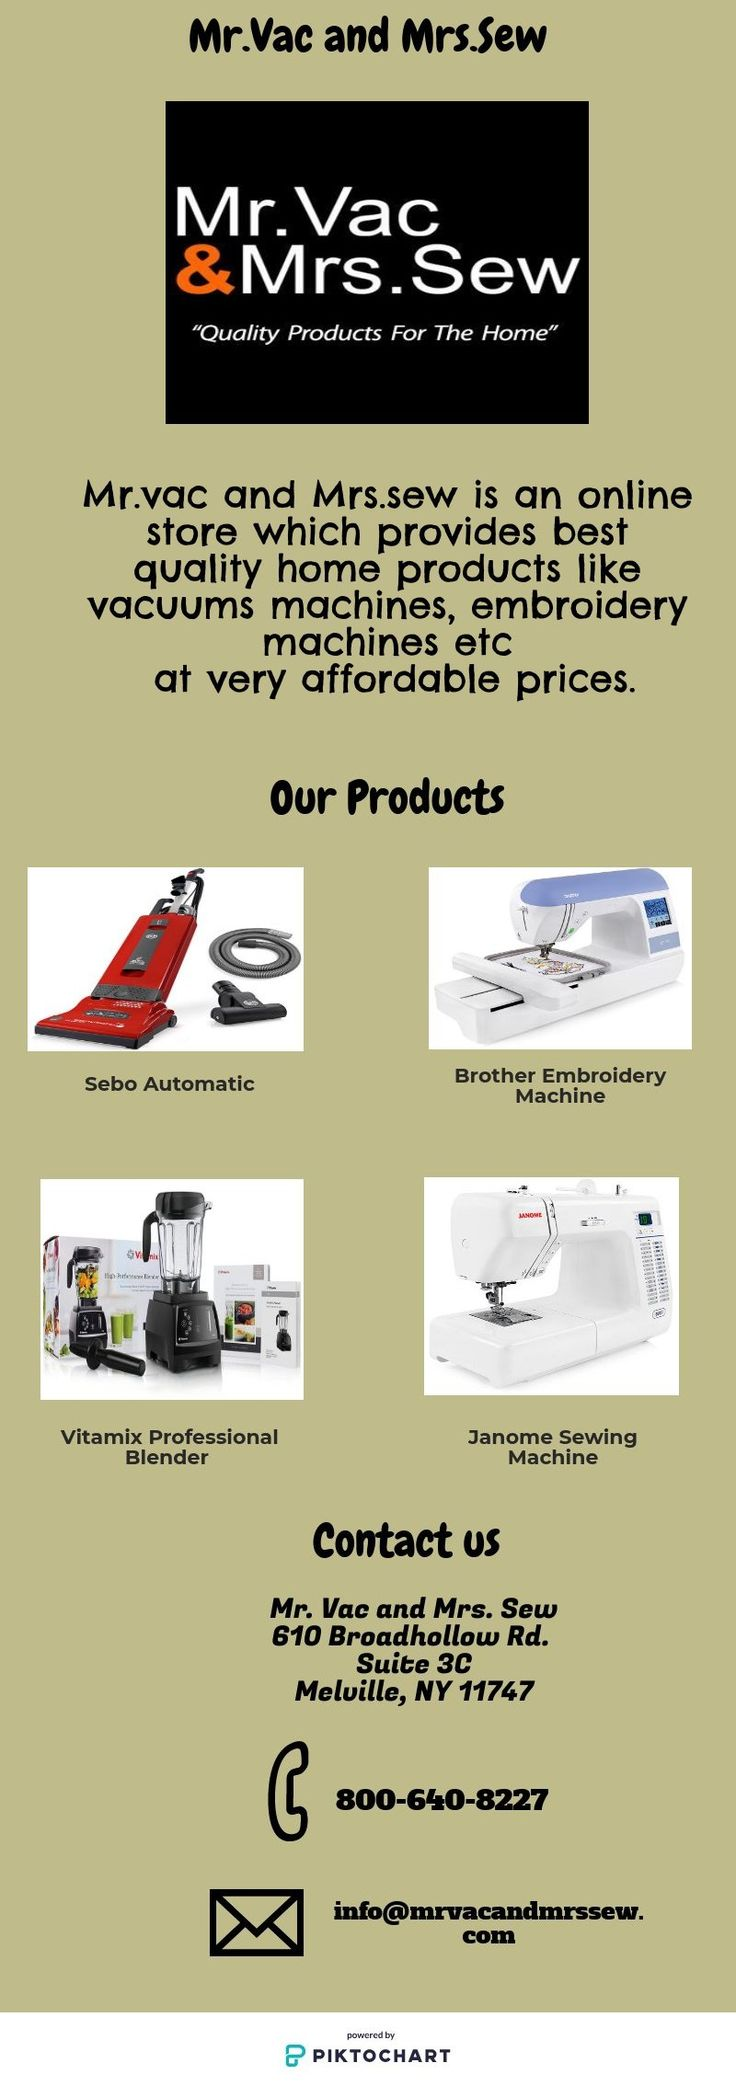 Mr Vac And Mrs Sew Is An Online Which Provides Best Quality Home Products Like Vacuums Machines Embroidery Etc At Very Affordable P